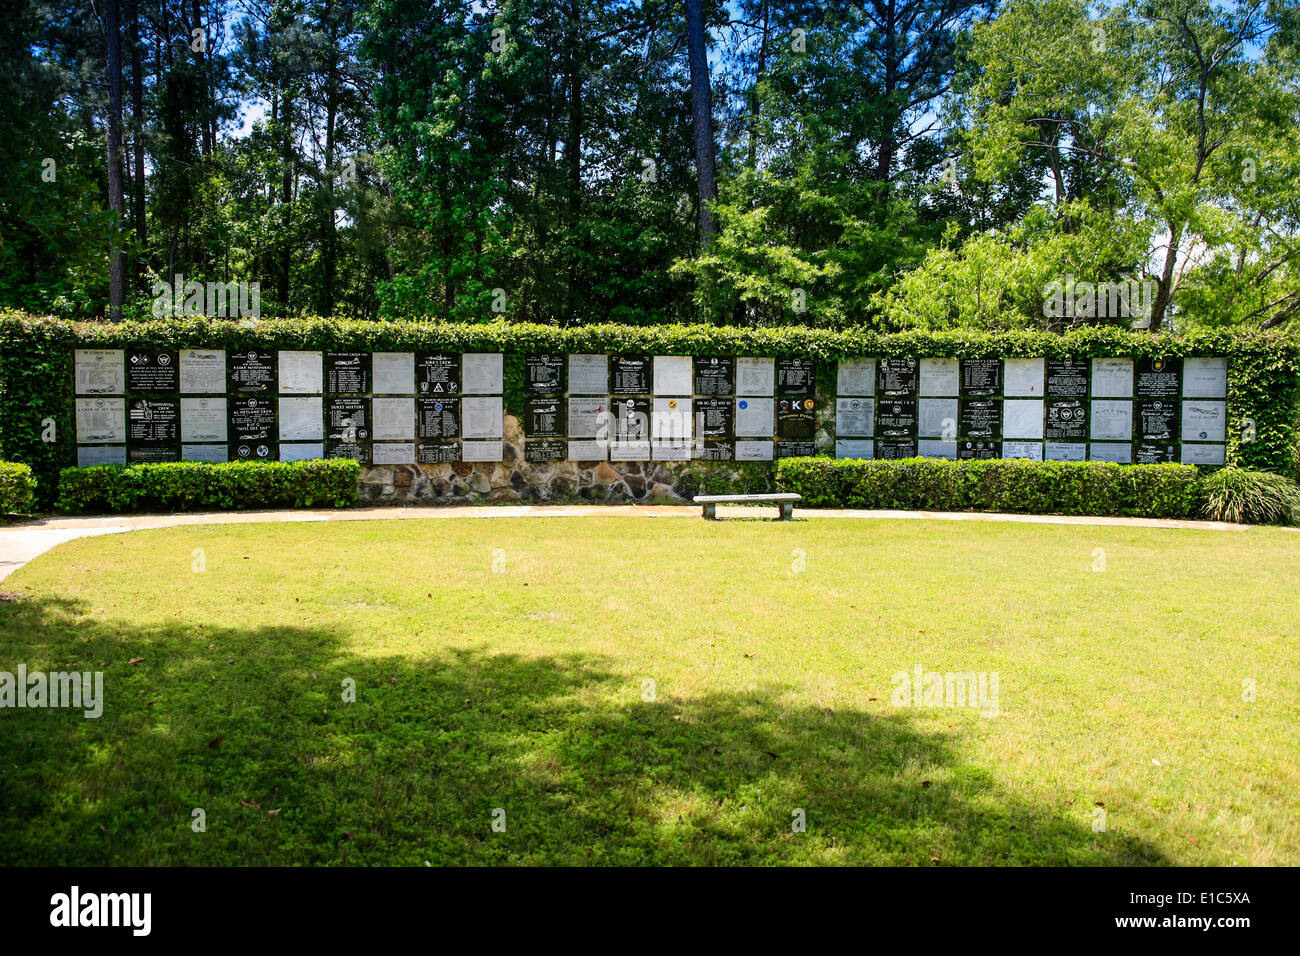 Plaques in the Memorial Gardens at the Mighty Eighth AF Museum at Pooler GA - Stock Image